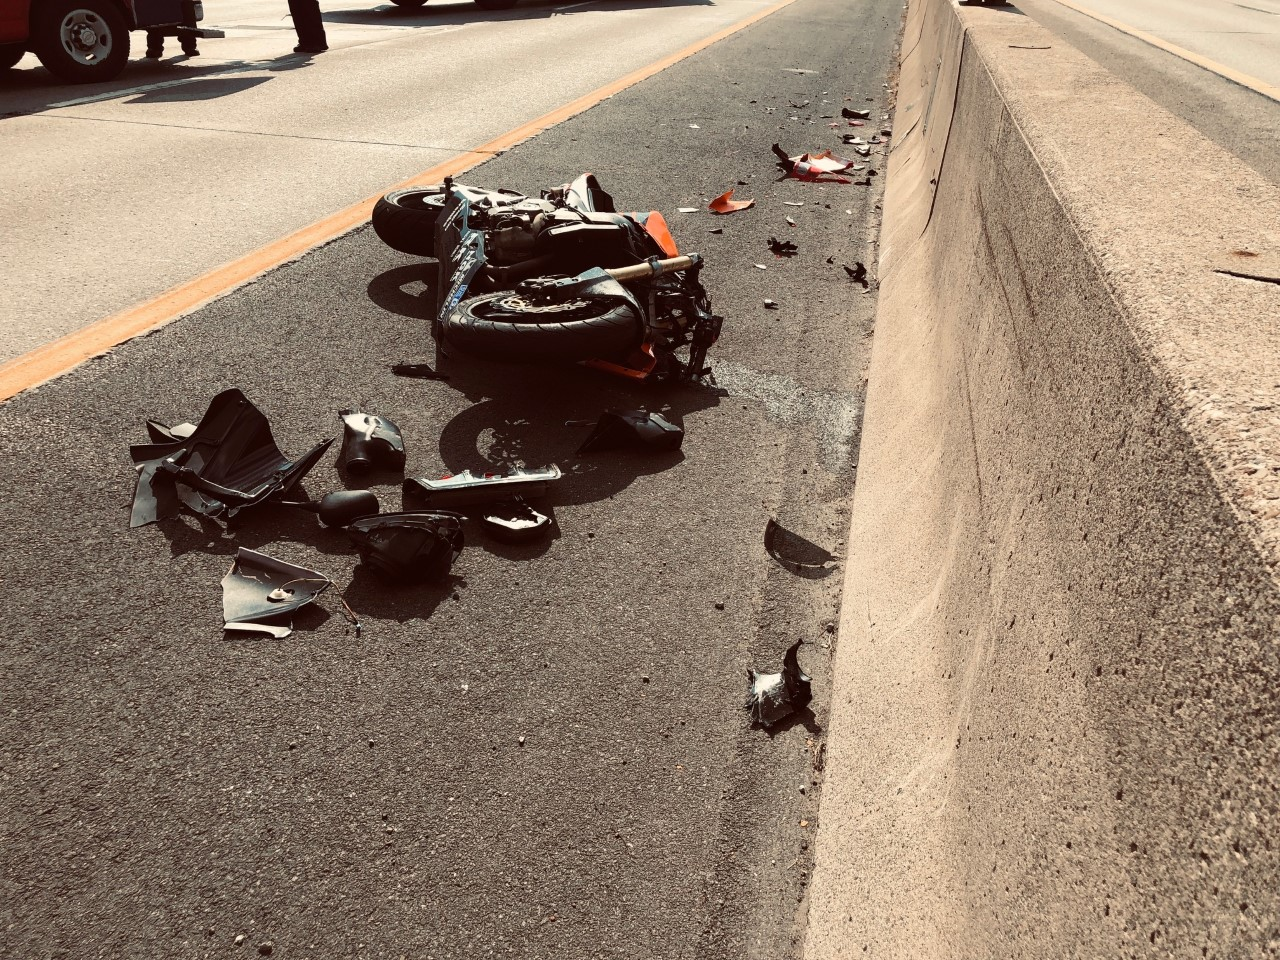 Motorcyclist injured in 190 crash Thursday afternoon | News 4 Buffalo